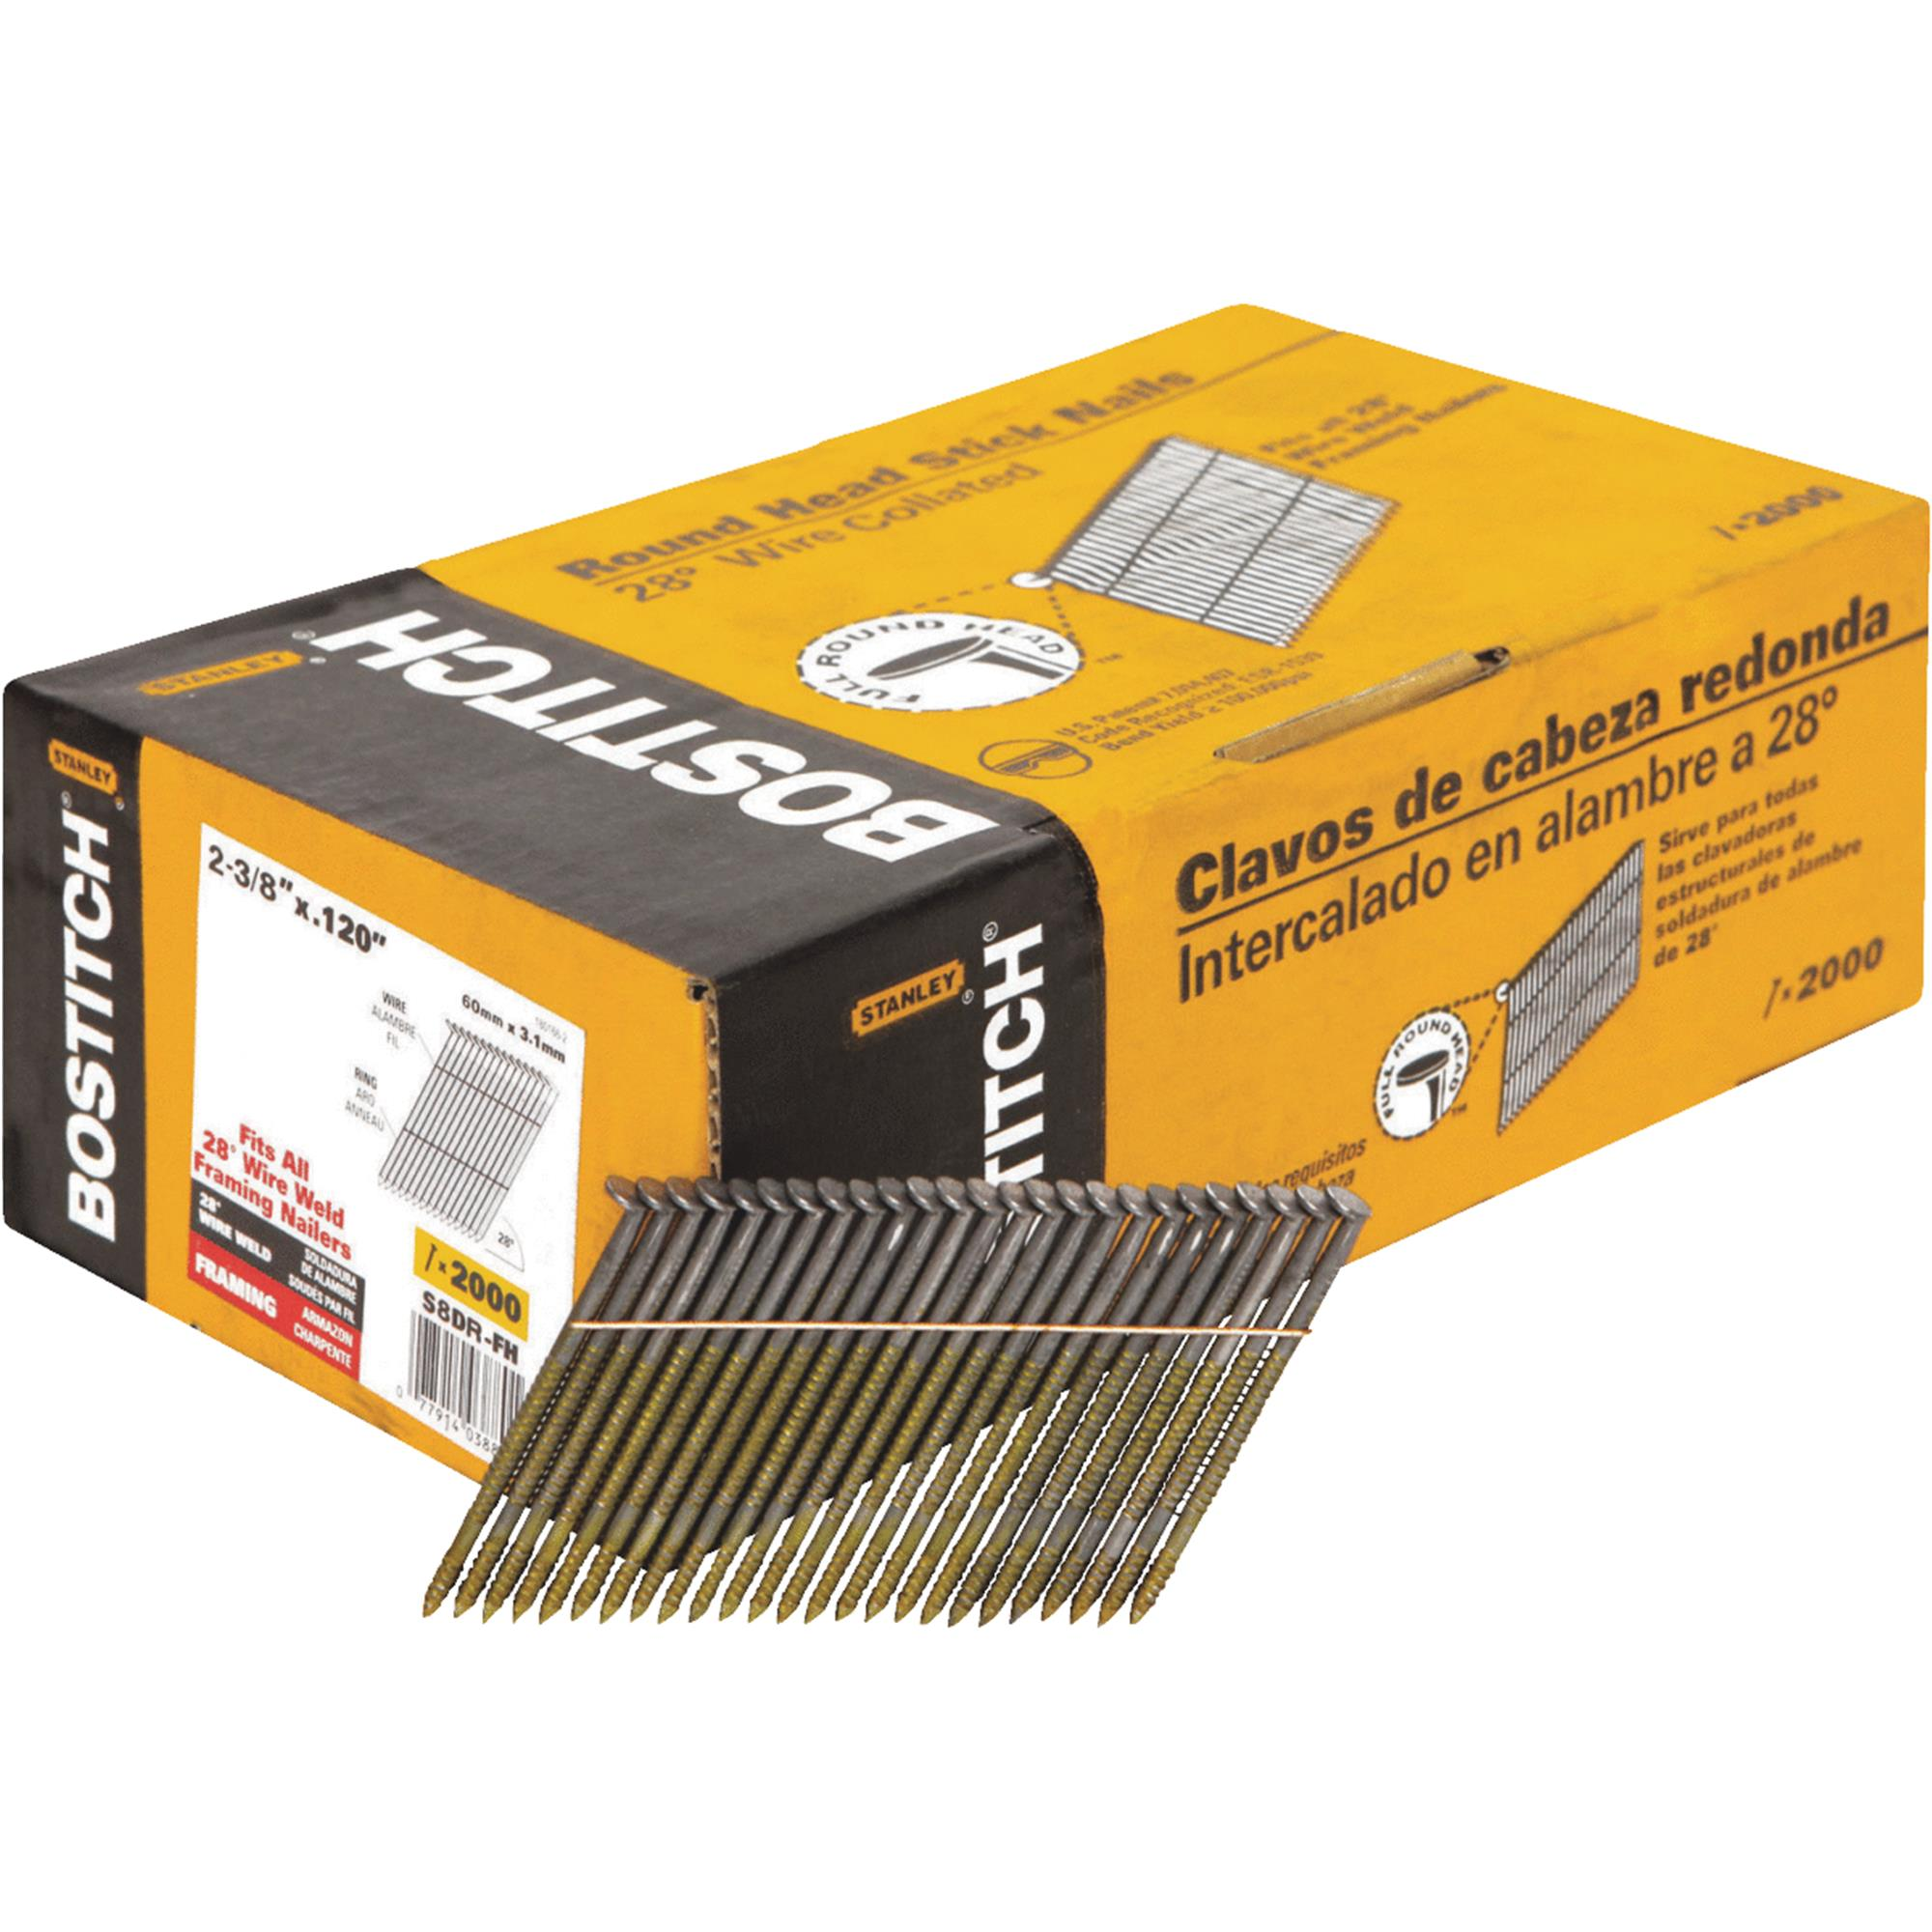 Framing Nail, 2-3/8 In,PK2000 BOSTITCH S8DR-FH